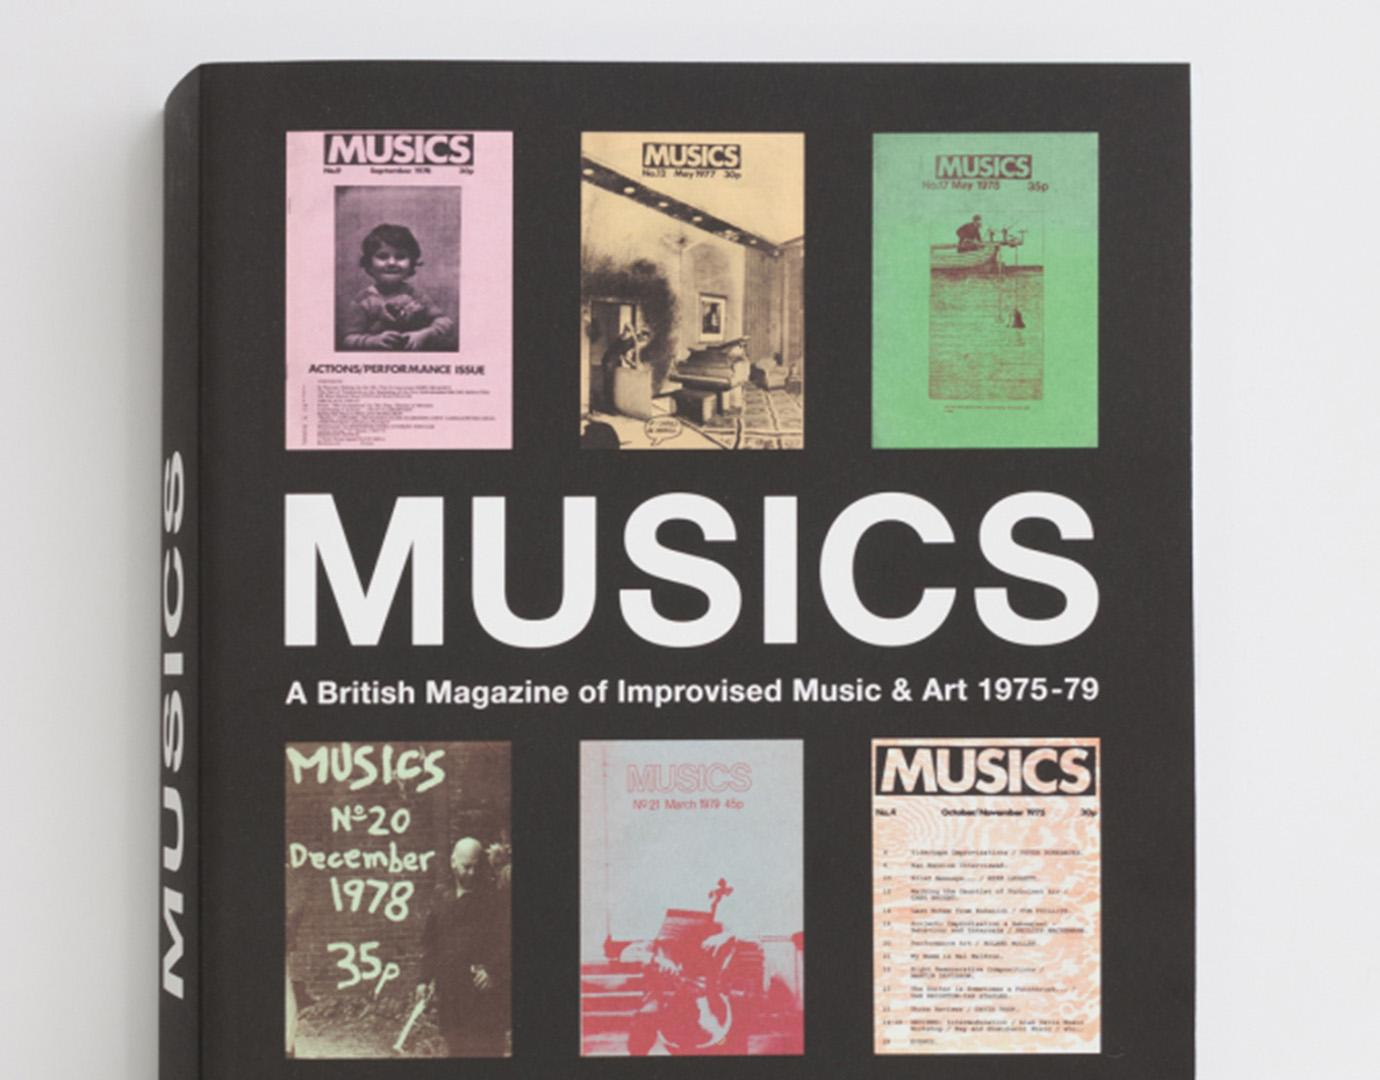 Ecstatic Peace Library Celebrates The Publication Of Musics (197579)